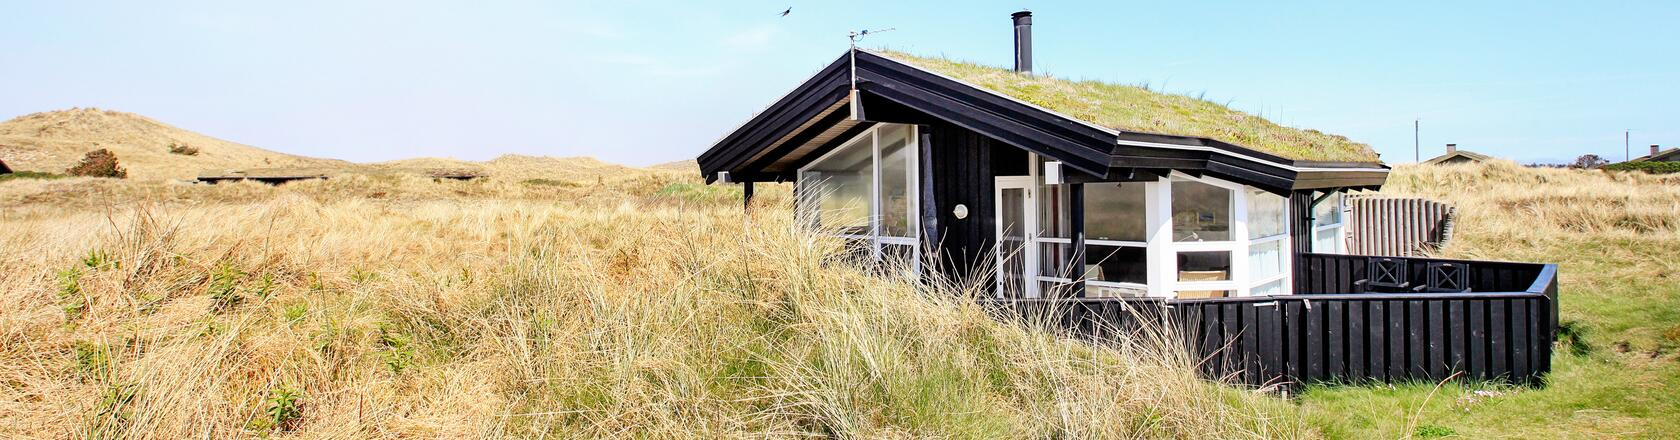 Lynderup in Denmark — Rent a holiday home with DanCenter